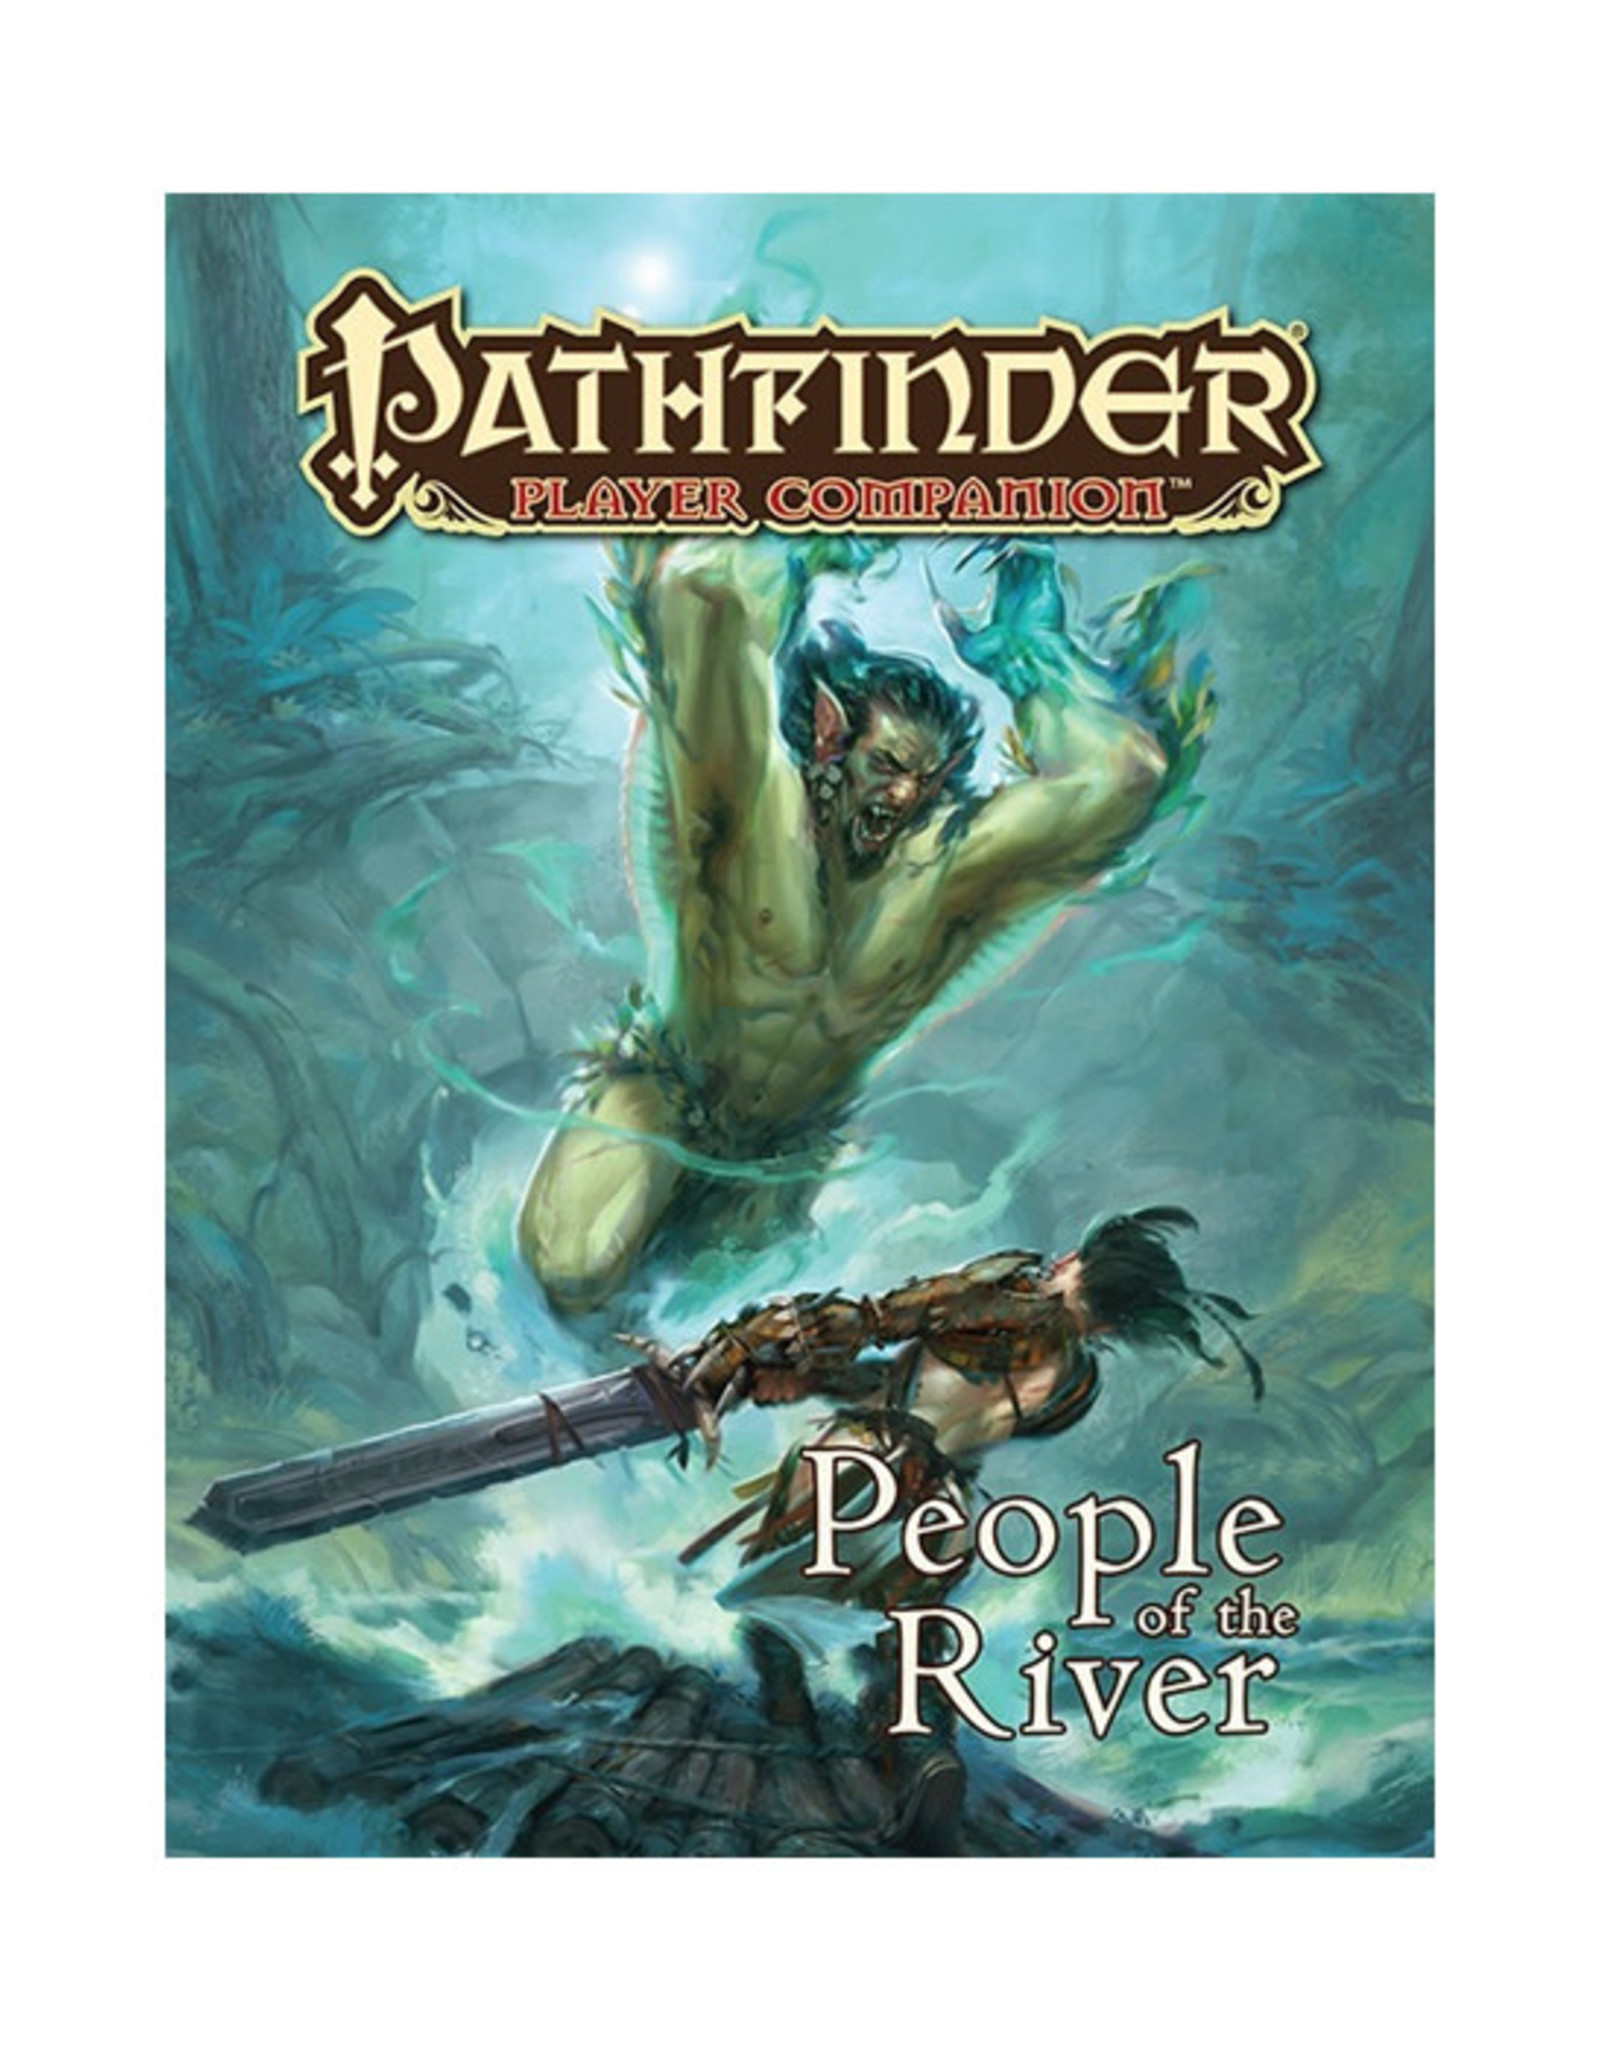 Pathfinder Pathfinder: Player Companion - People of the River